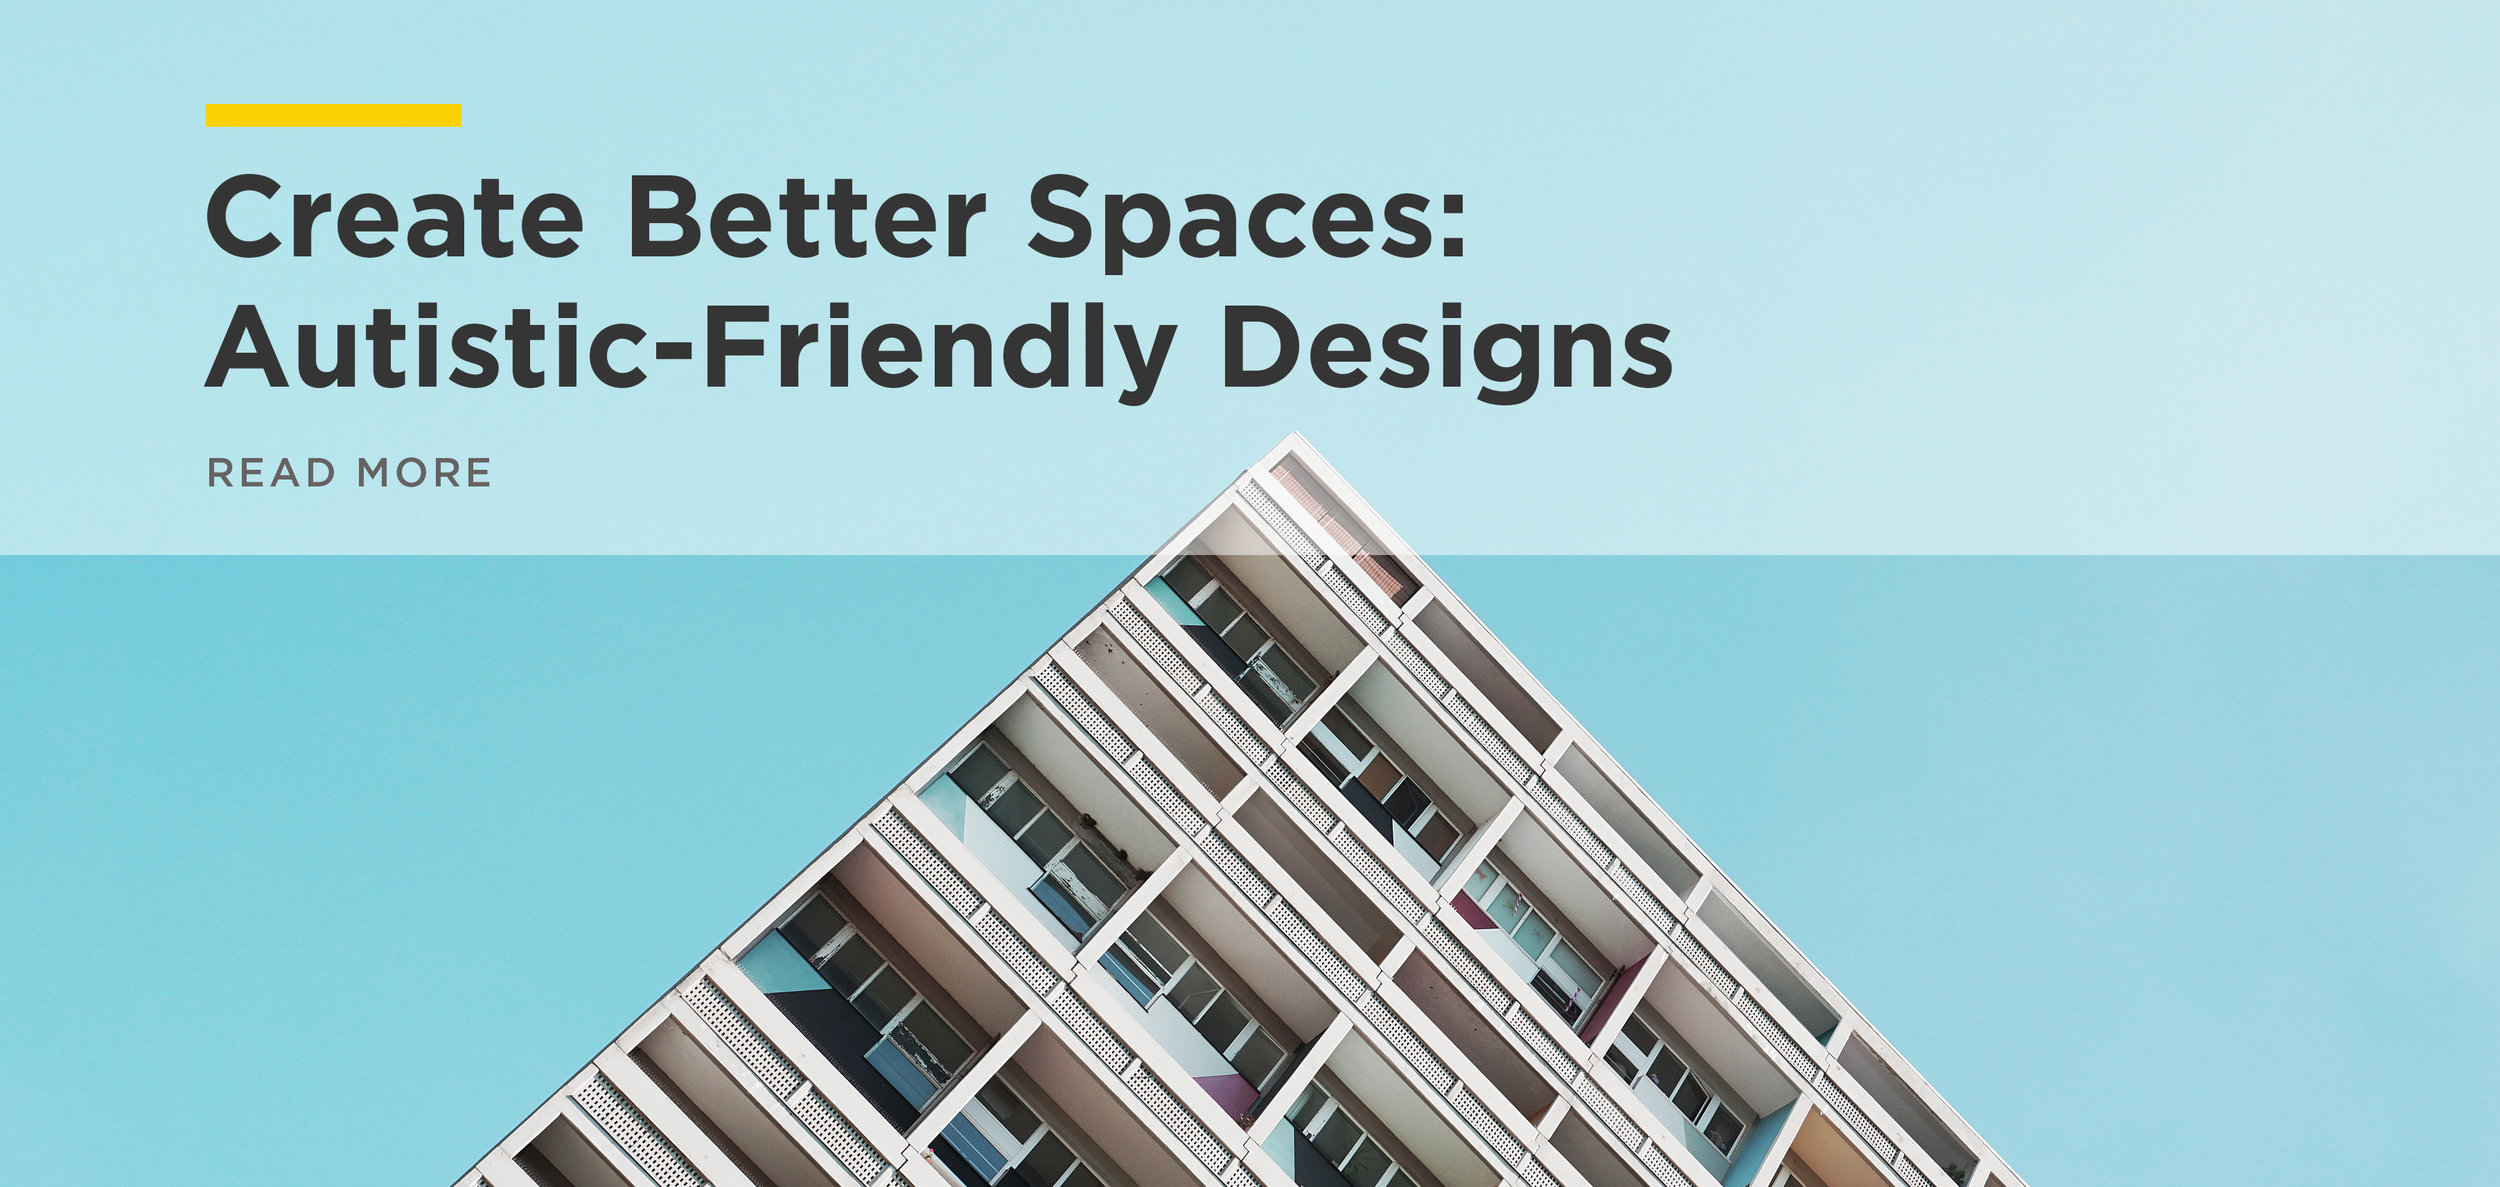 How To Design Spaces For People With >> Design Architecture Consulting Create Better Spaces